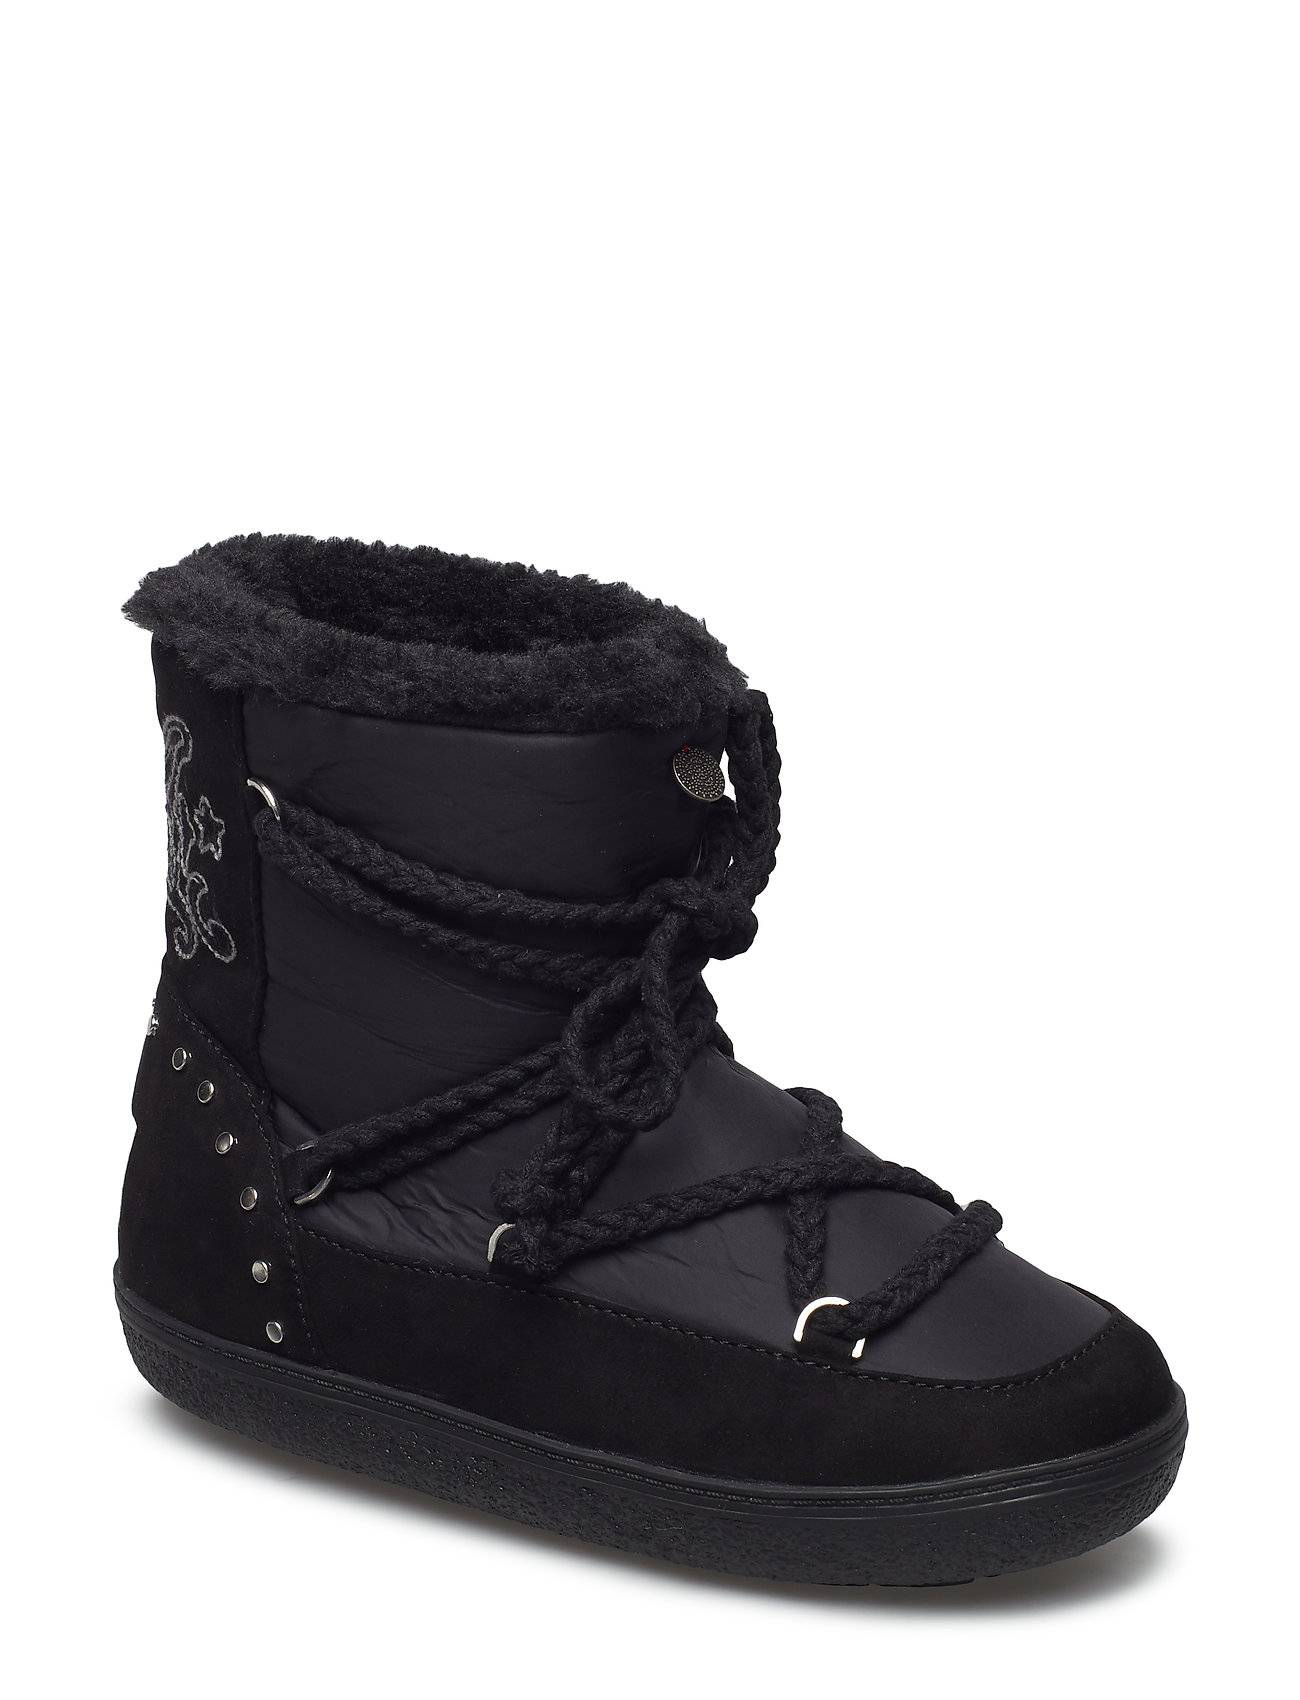 ODD MOLLY Soft Artic Low Boot